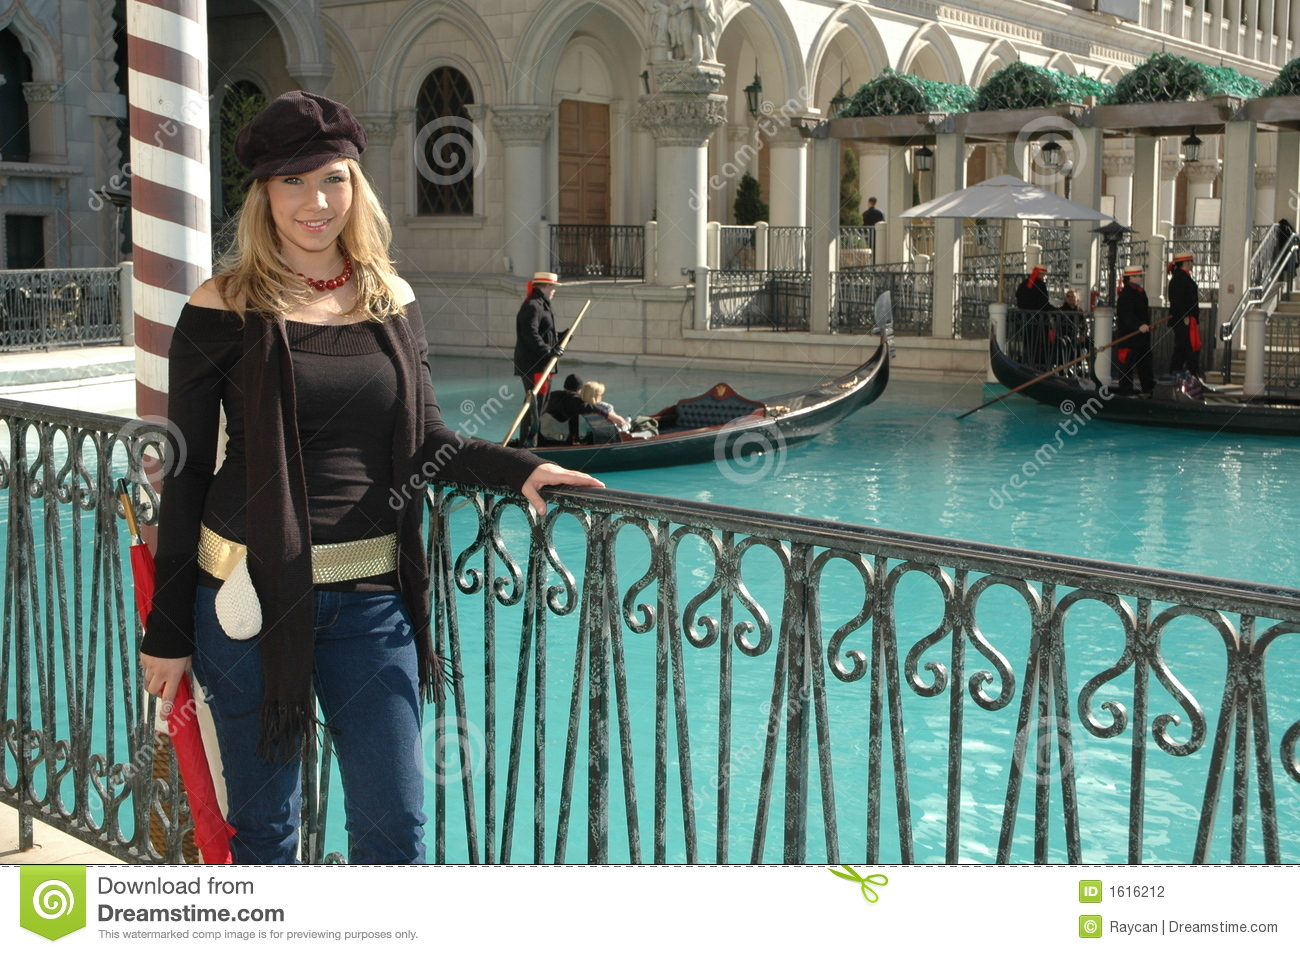 venetia single girls Looking to dine in las vegas the venetian features 40+ restaurants ranging from the simple to the extravagant indulge your palates at the best las vegas restaurants.